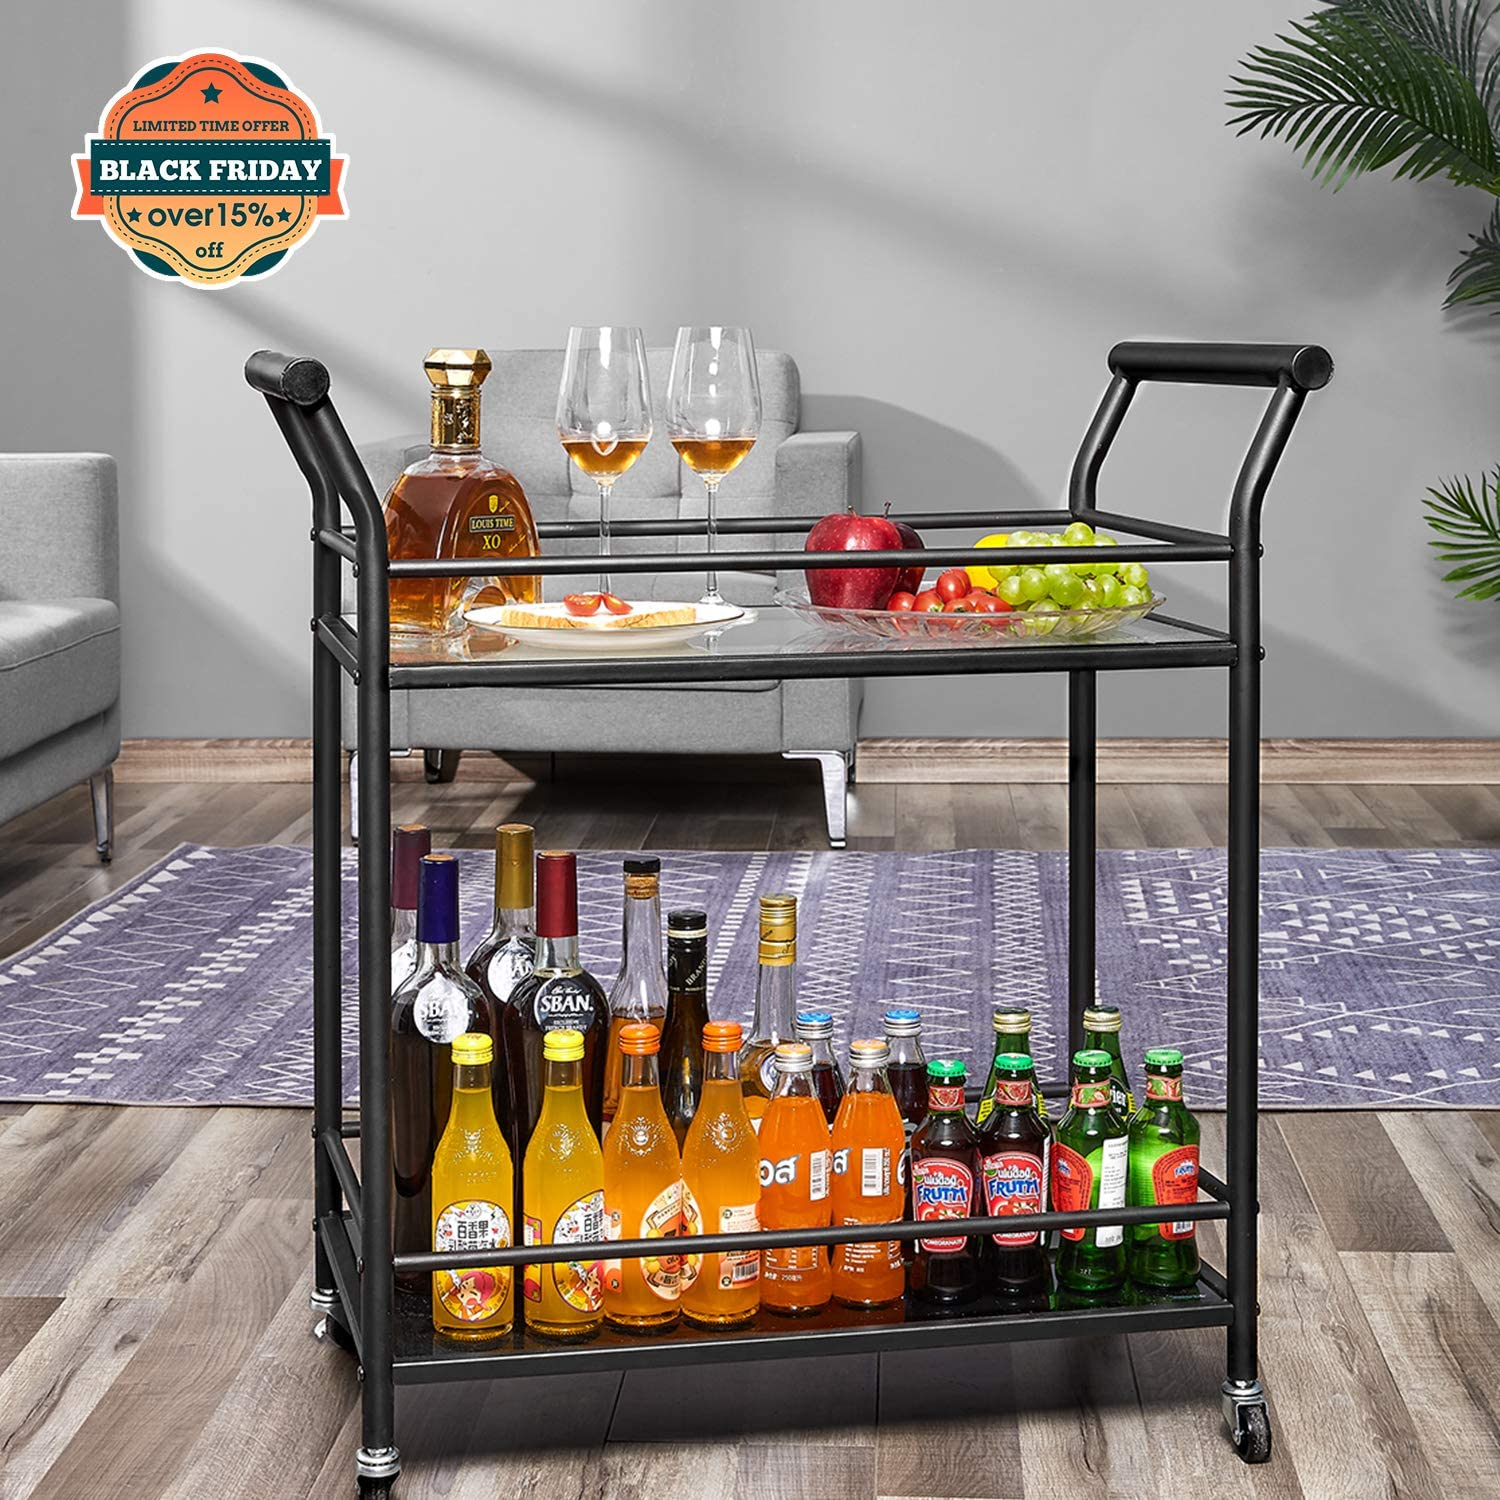 kealive Rolling Bar Cart Wine Serving Cart with Tempered Glass and Metal Frame, 2 Lockable Wheels, 29.5L x 15.8W x 31.5H, Black